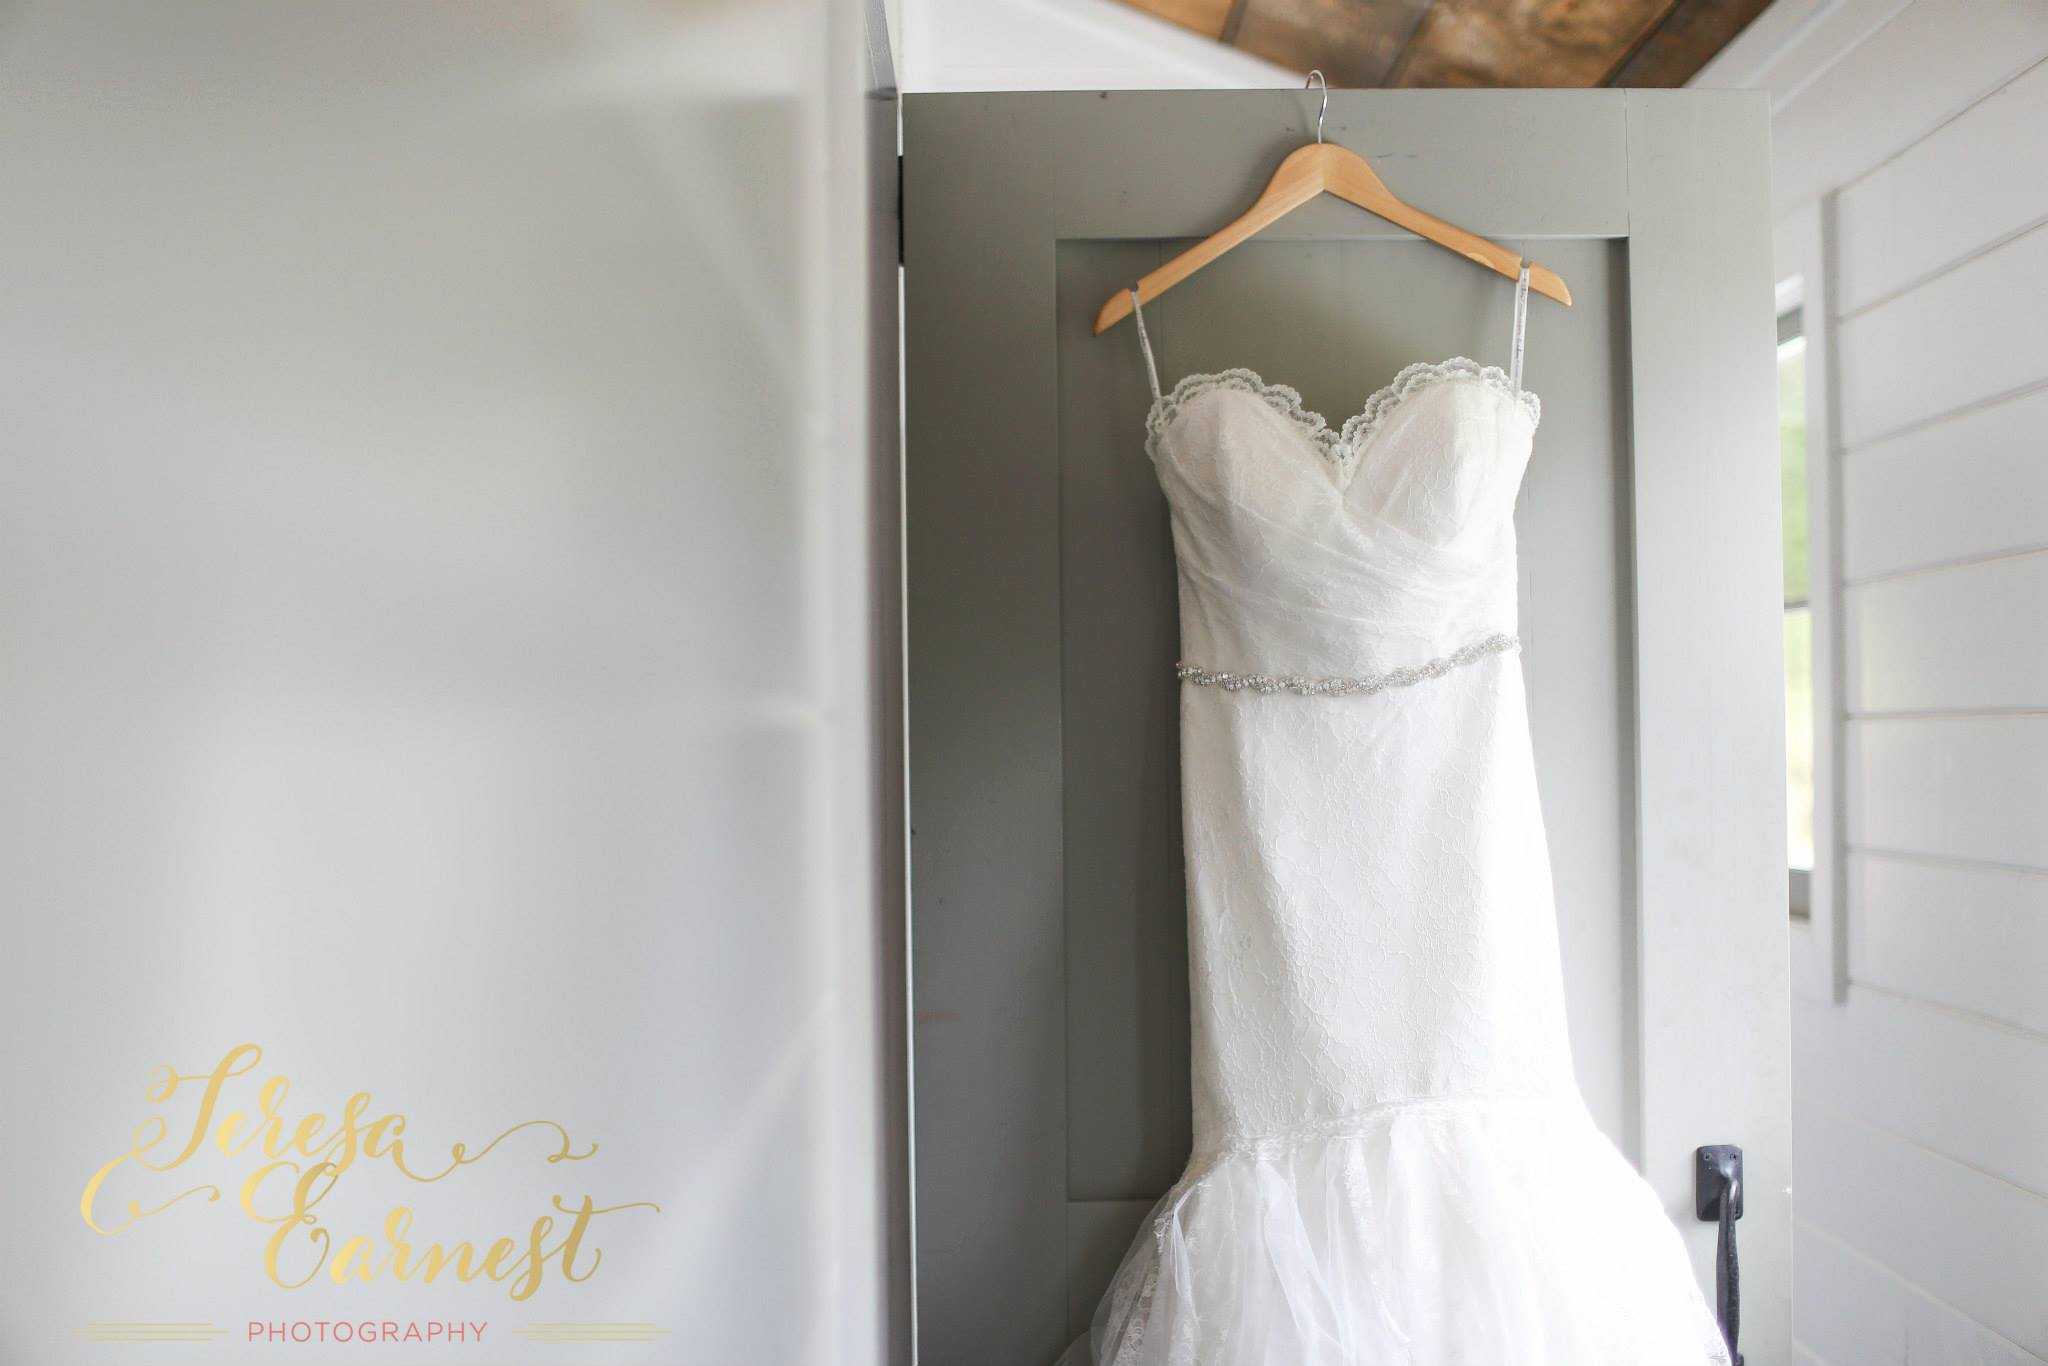 brittany-and-jon-teresa-earnest-photography-sugar-boo-farms-wedding-ivory-and-beau-bridal-boutique-savannah-wedding-dresses-savannah-bridal-boutique-ti-adora-wedding-dress-ti-adora-4500-georgia-wedding-dresses-savannah-wedding-dresses-2.jpg